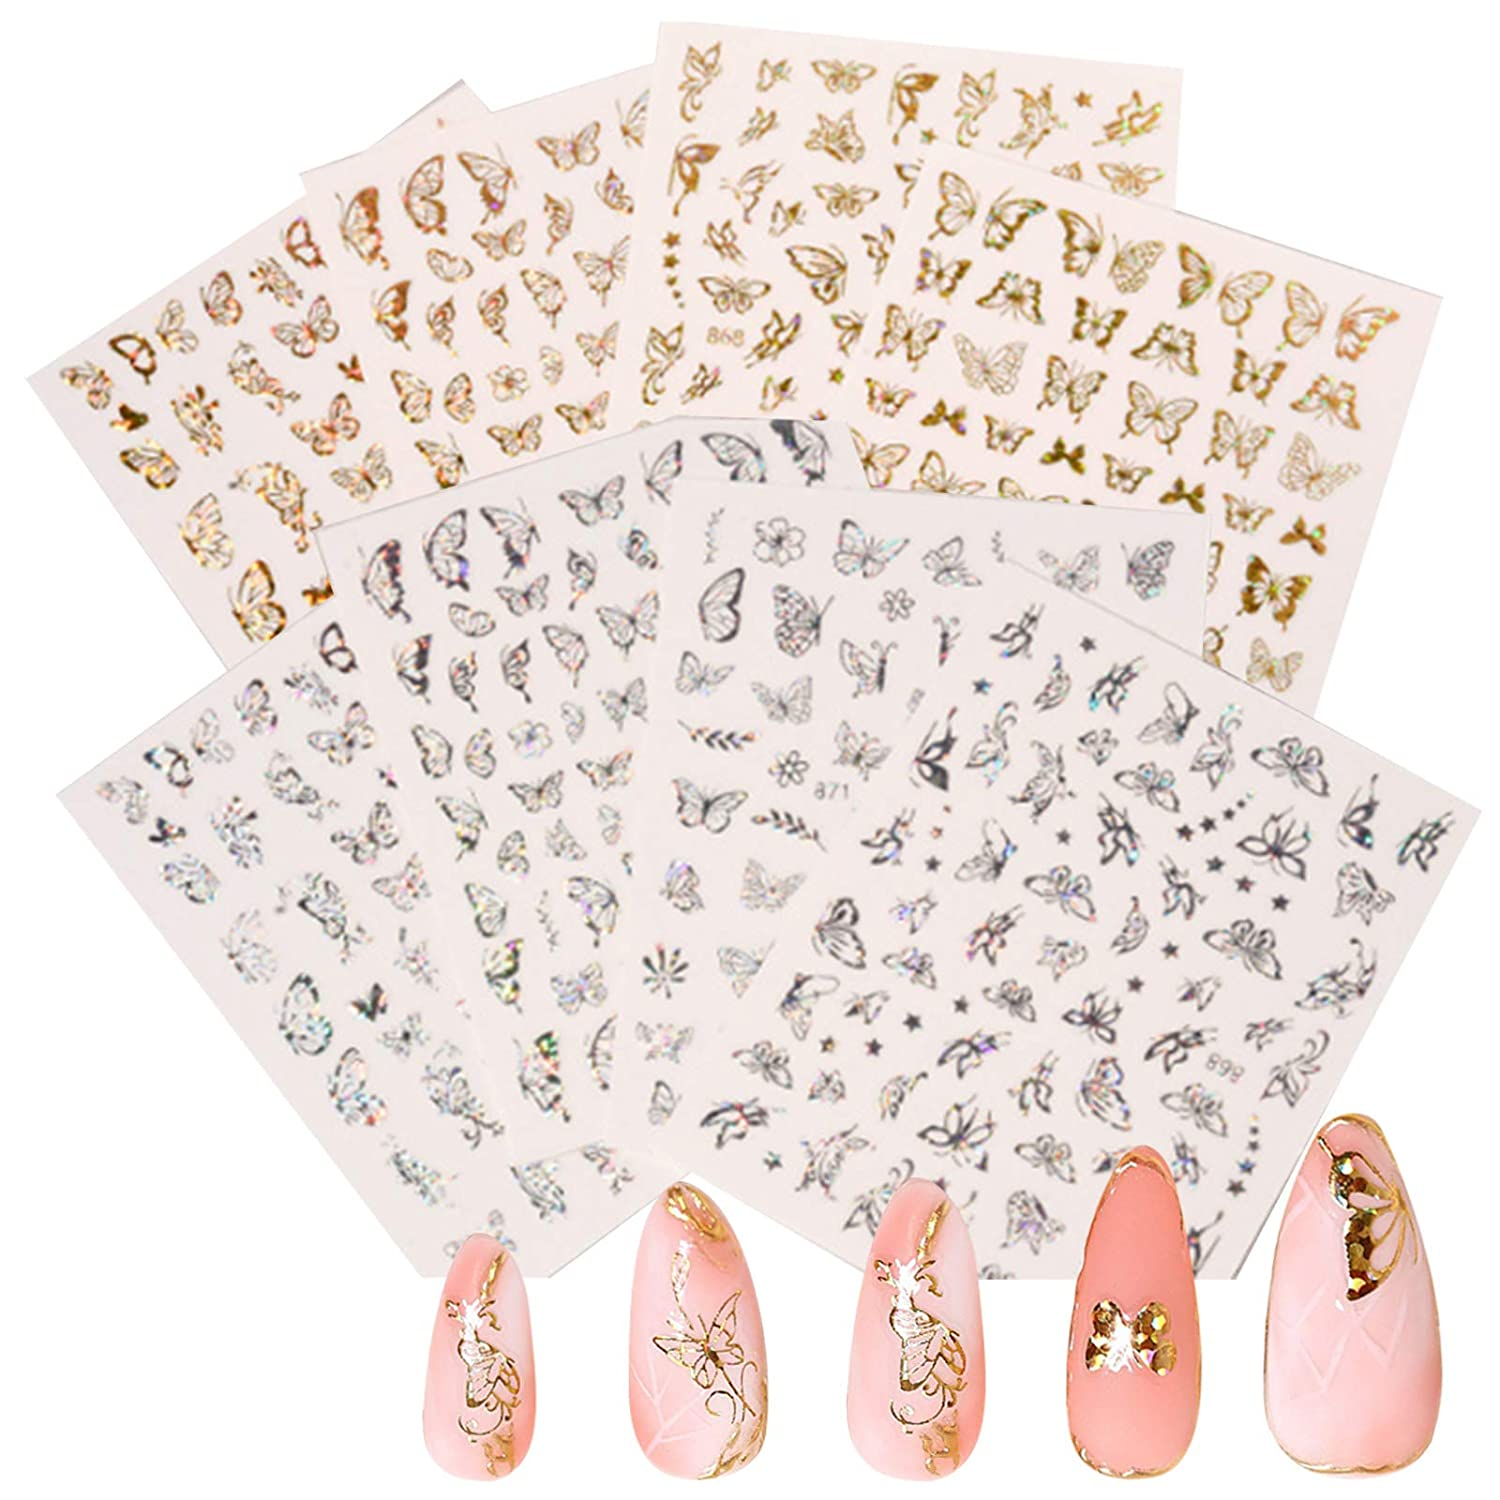 16 Sheets Nail Art Adhesive Sticker Sheets, Shellvcase Laser Gold and Silver Butterfly Metallic Nail Decals, Self-Adhesive 3D Butterfly Nail Stickers for Women Girls Salon Home DIY Nail Decoration